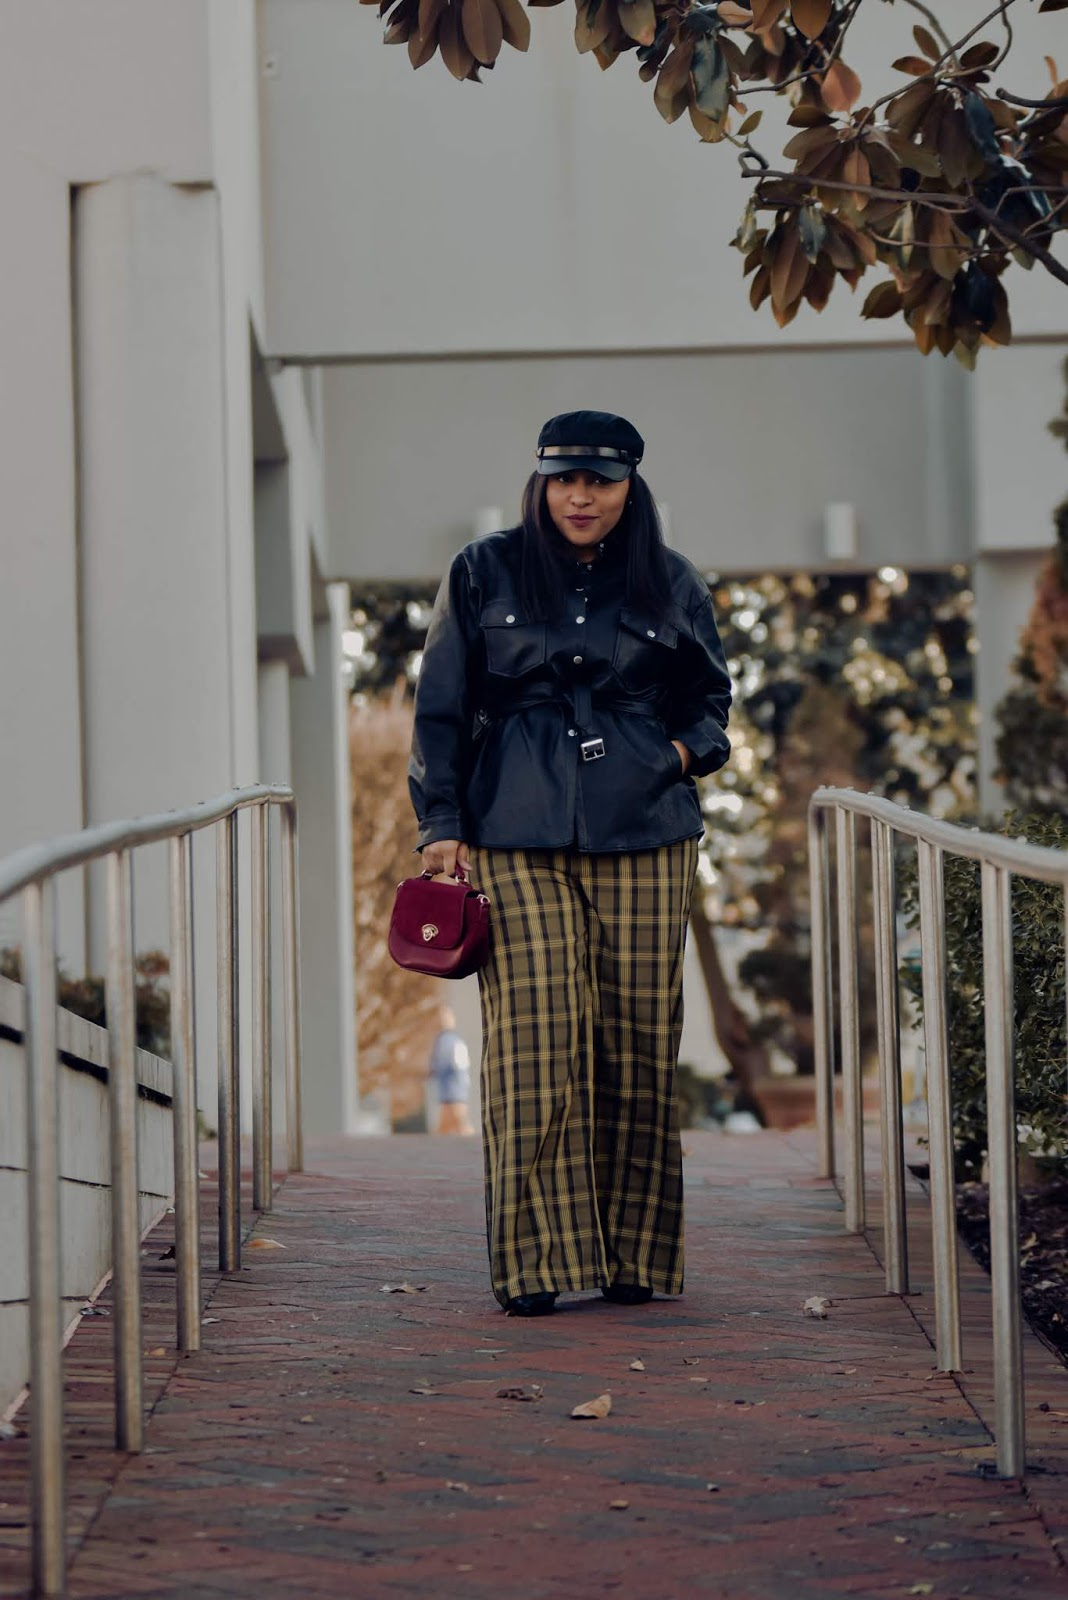 shein, shein reviews, tartan print, tartan trend, plaid pants, chic winter outfits, pattys kloset, yellow tartan pants